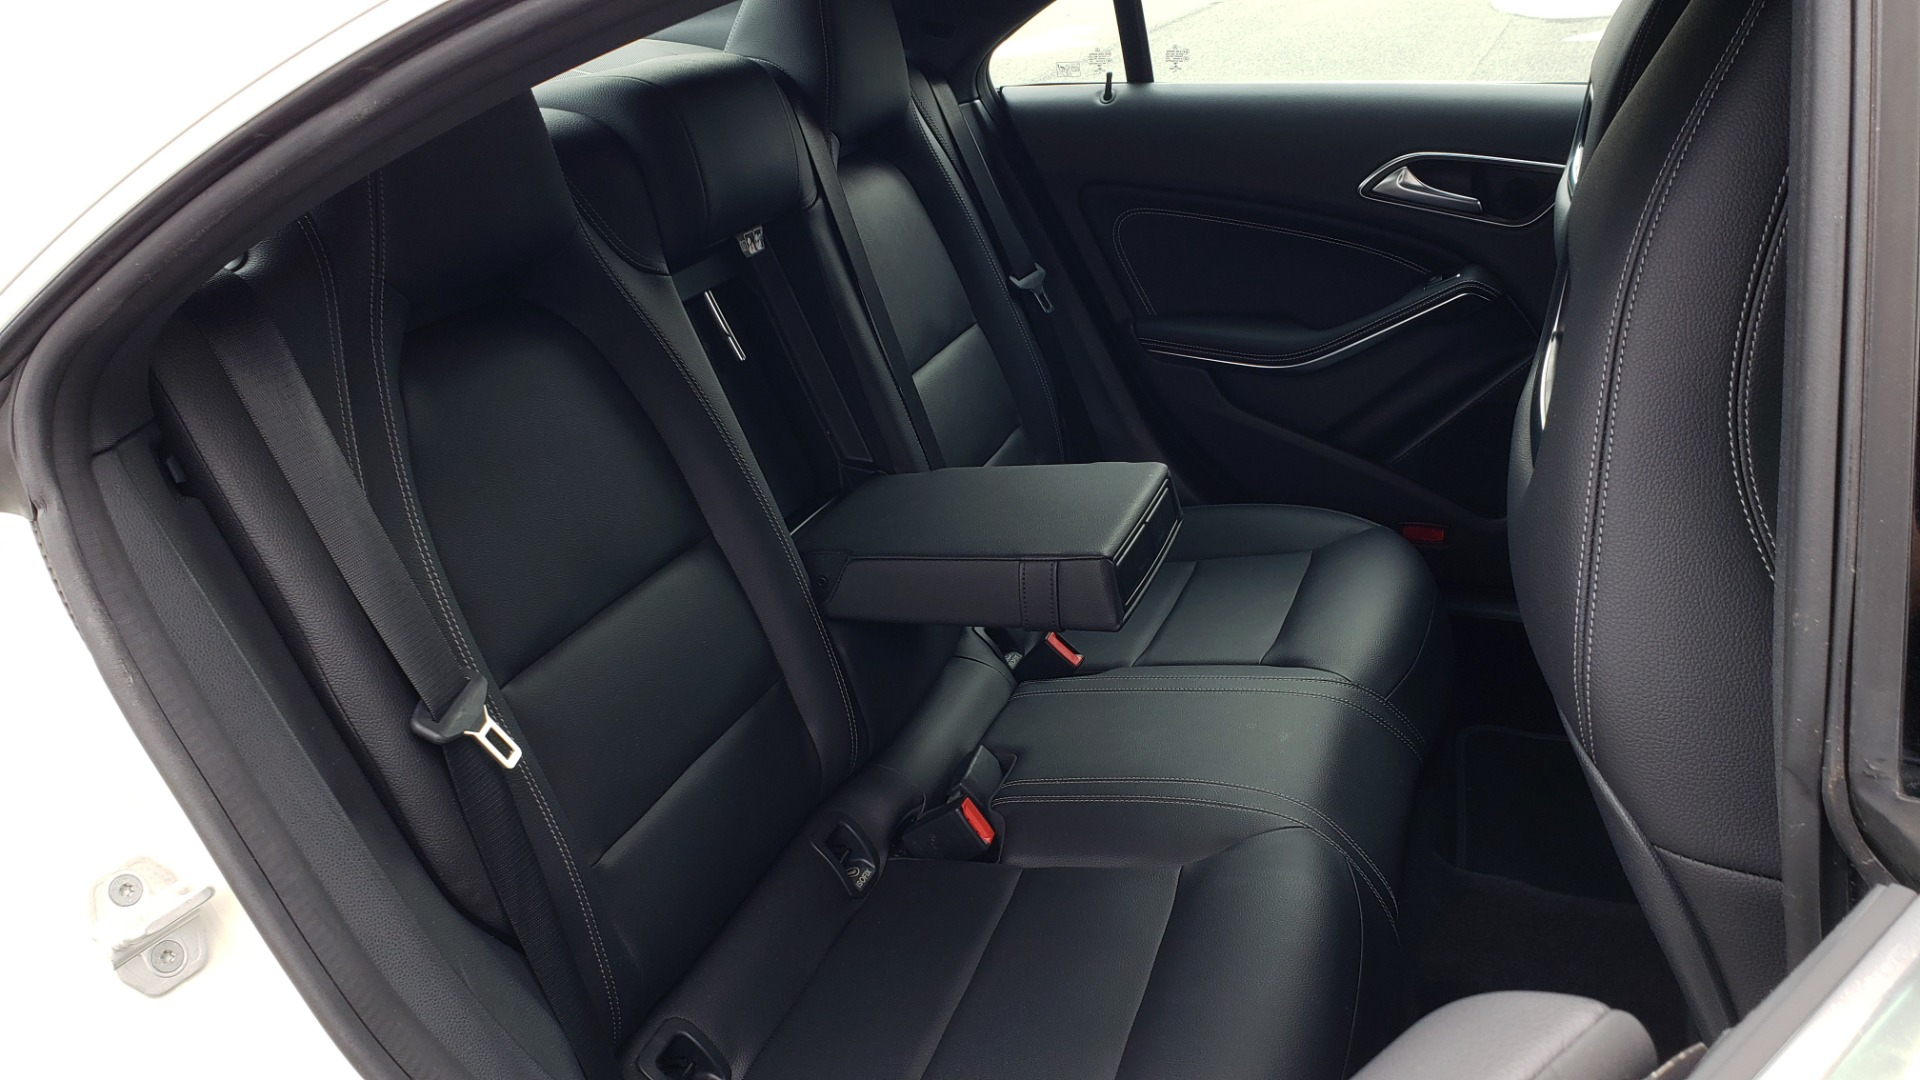 Used 2018 Mercedes-Benz CLA 250 PREMIUM / NAV / PANO-ROOF / APPLE CARPLAY / REARVIEW for sale $23,995 at Formula Imports in Charlotte NC 28227 72